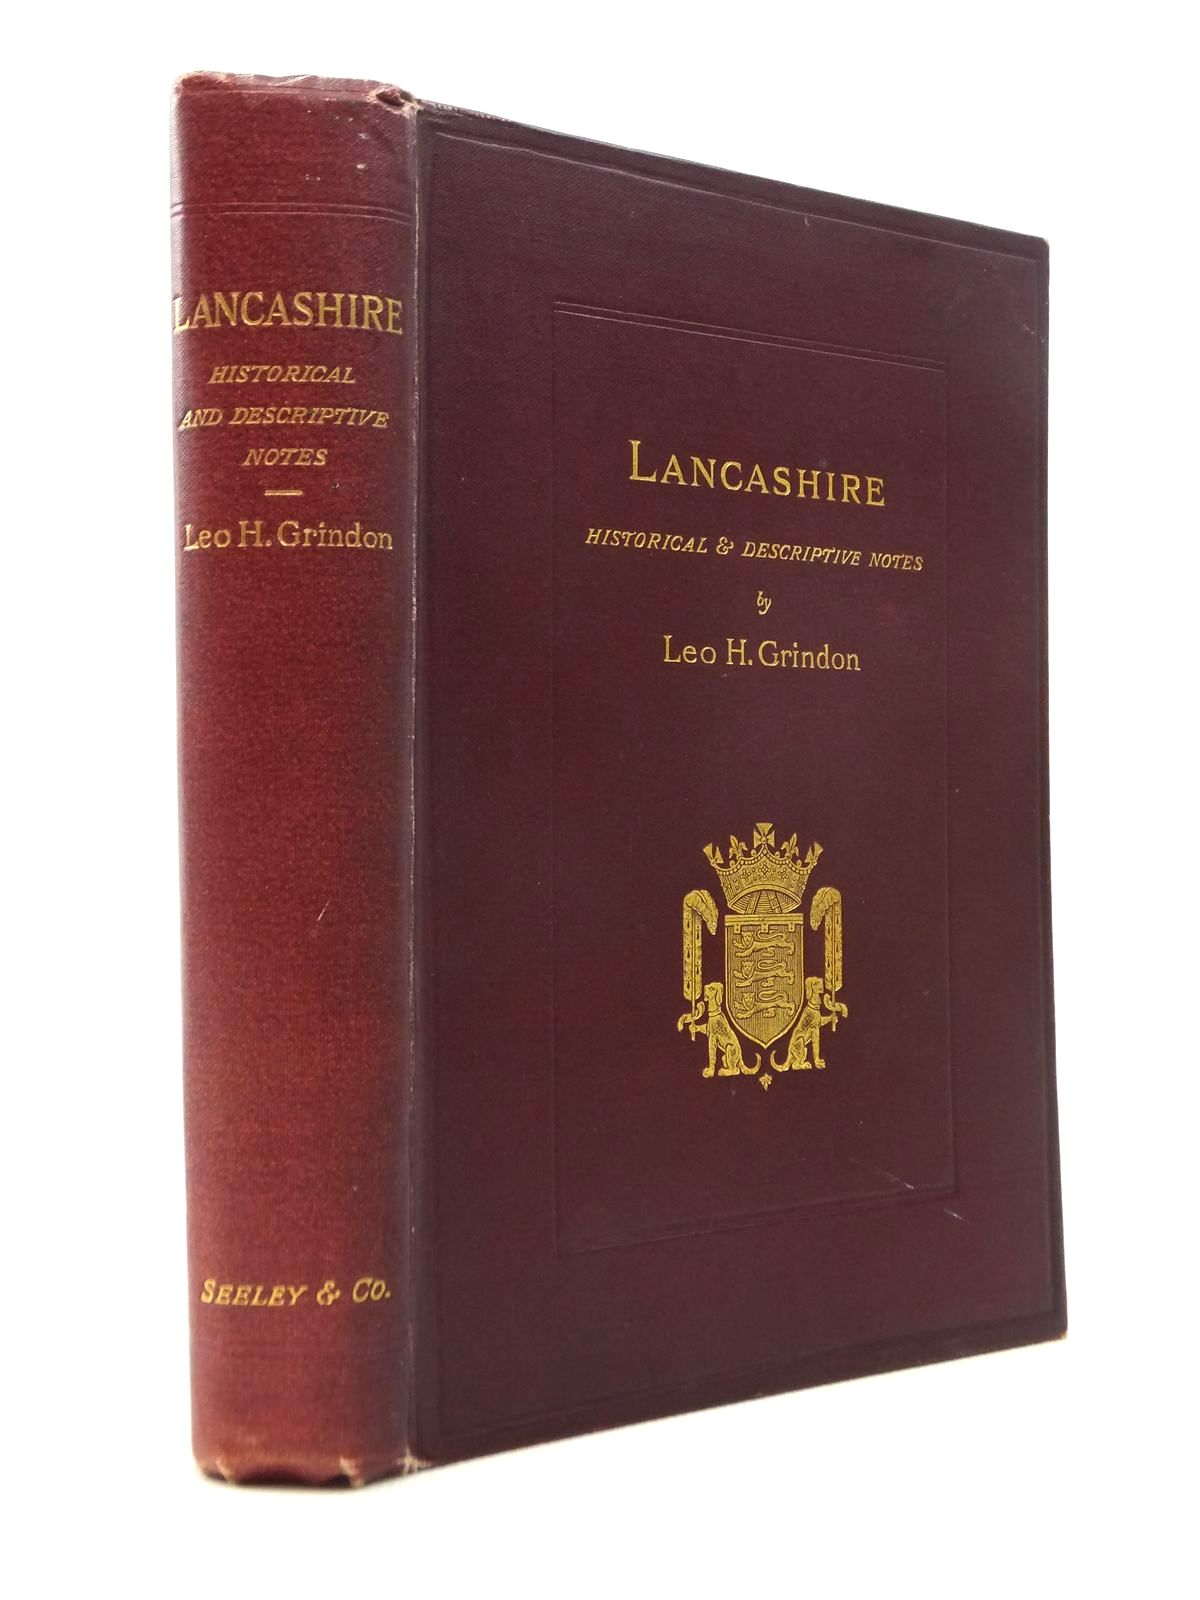 Photo of LANCASHIRE BRIEF HISTORICAL AND DESCRIPTIVE NOTES written by Grindon, Leo H. published by Seeley and Co. Limited (STOCK CODE: 1208757)  for sale by Stella & Rose's Books